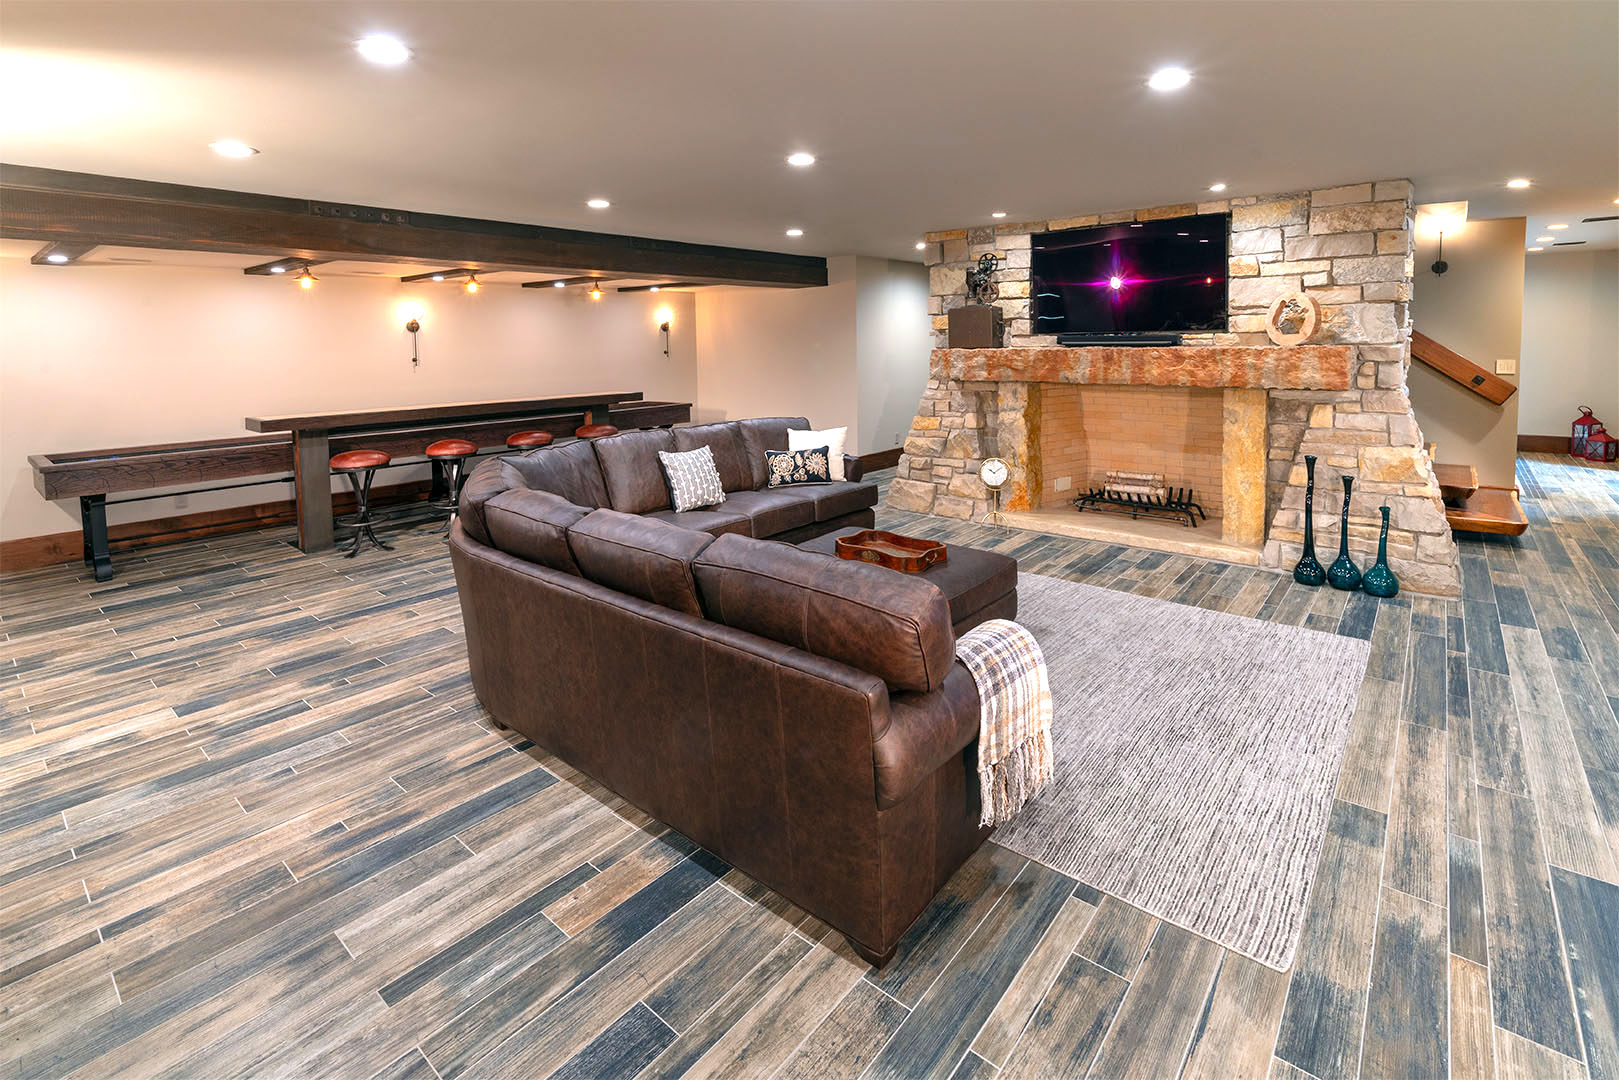 Gameroom and stone fireplace